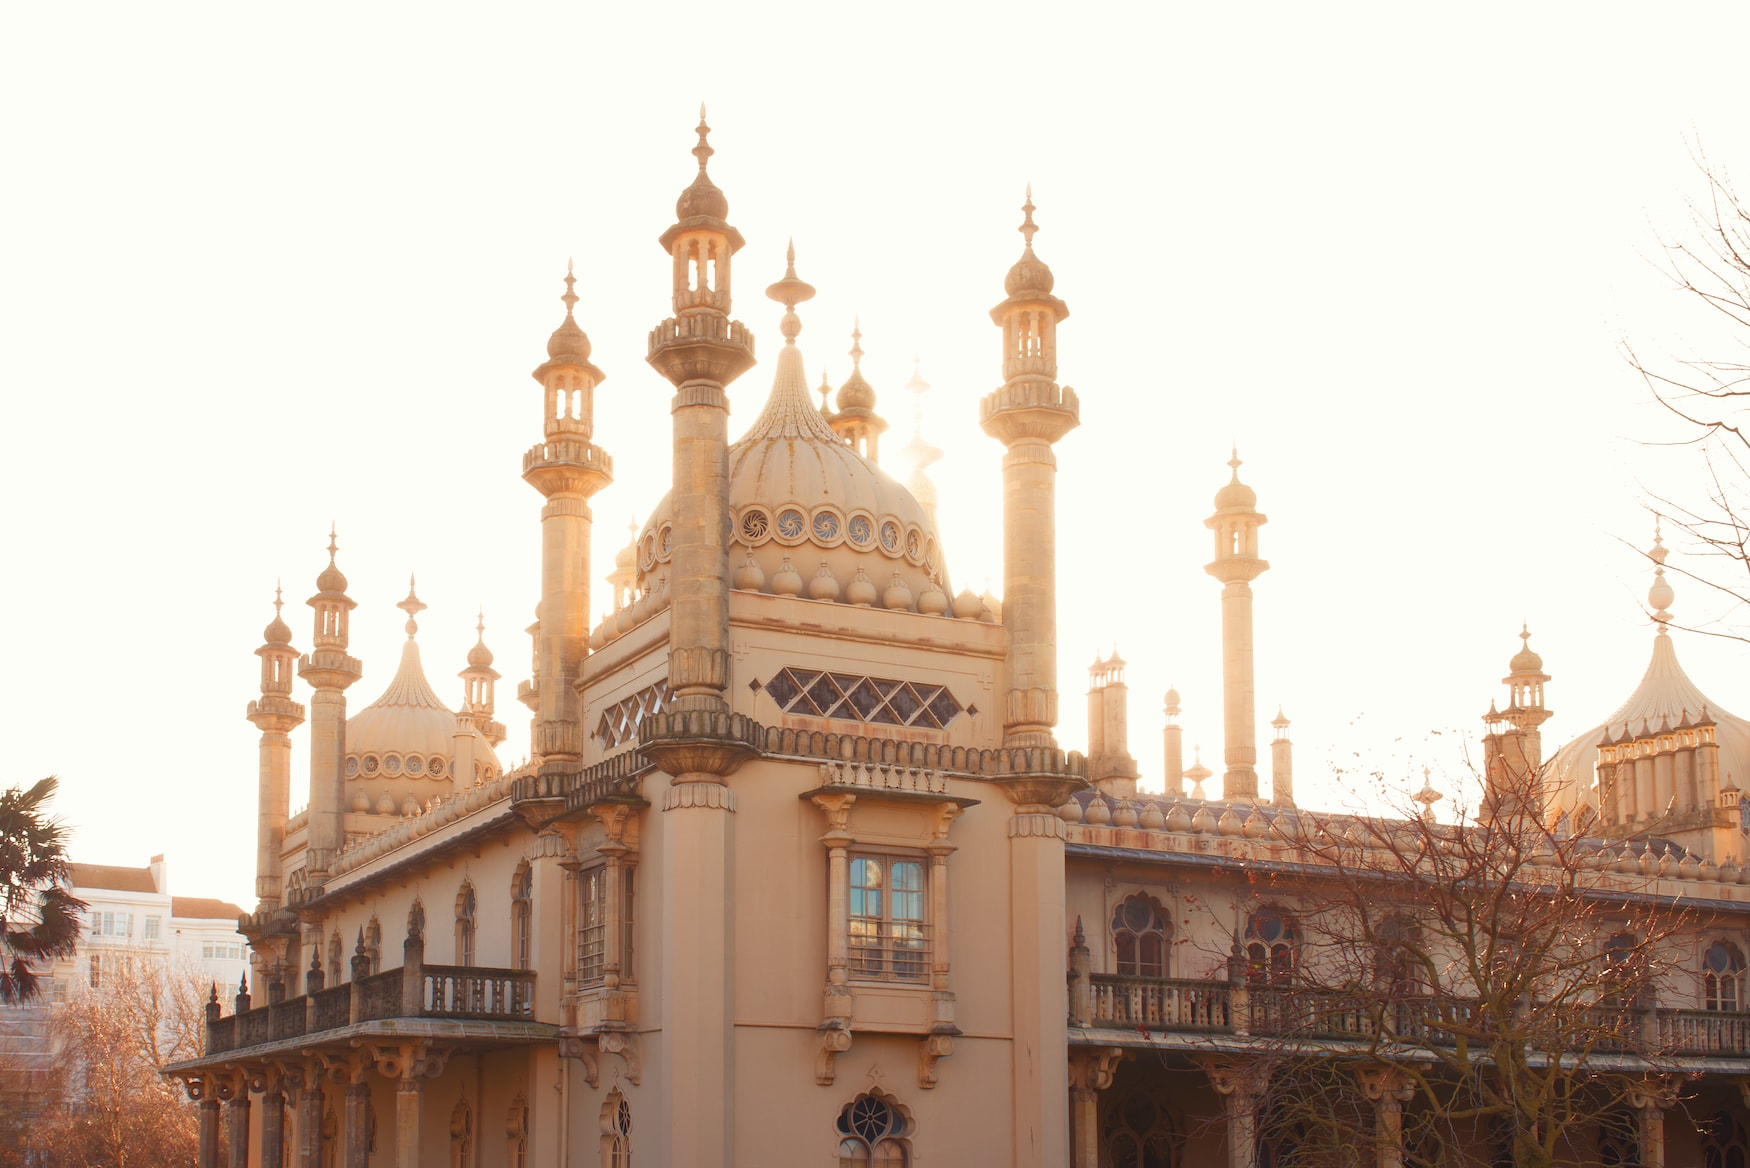 The Royal Pavilion in Brighton bei Abendlicht